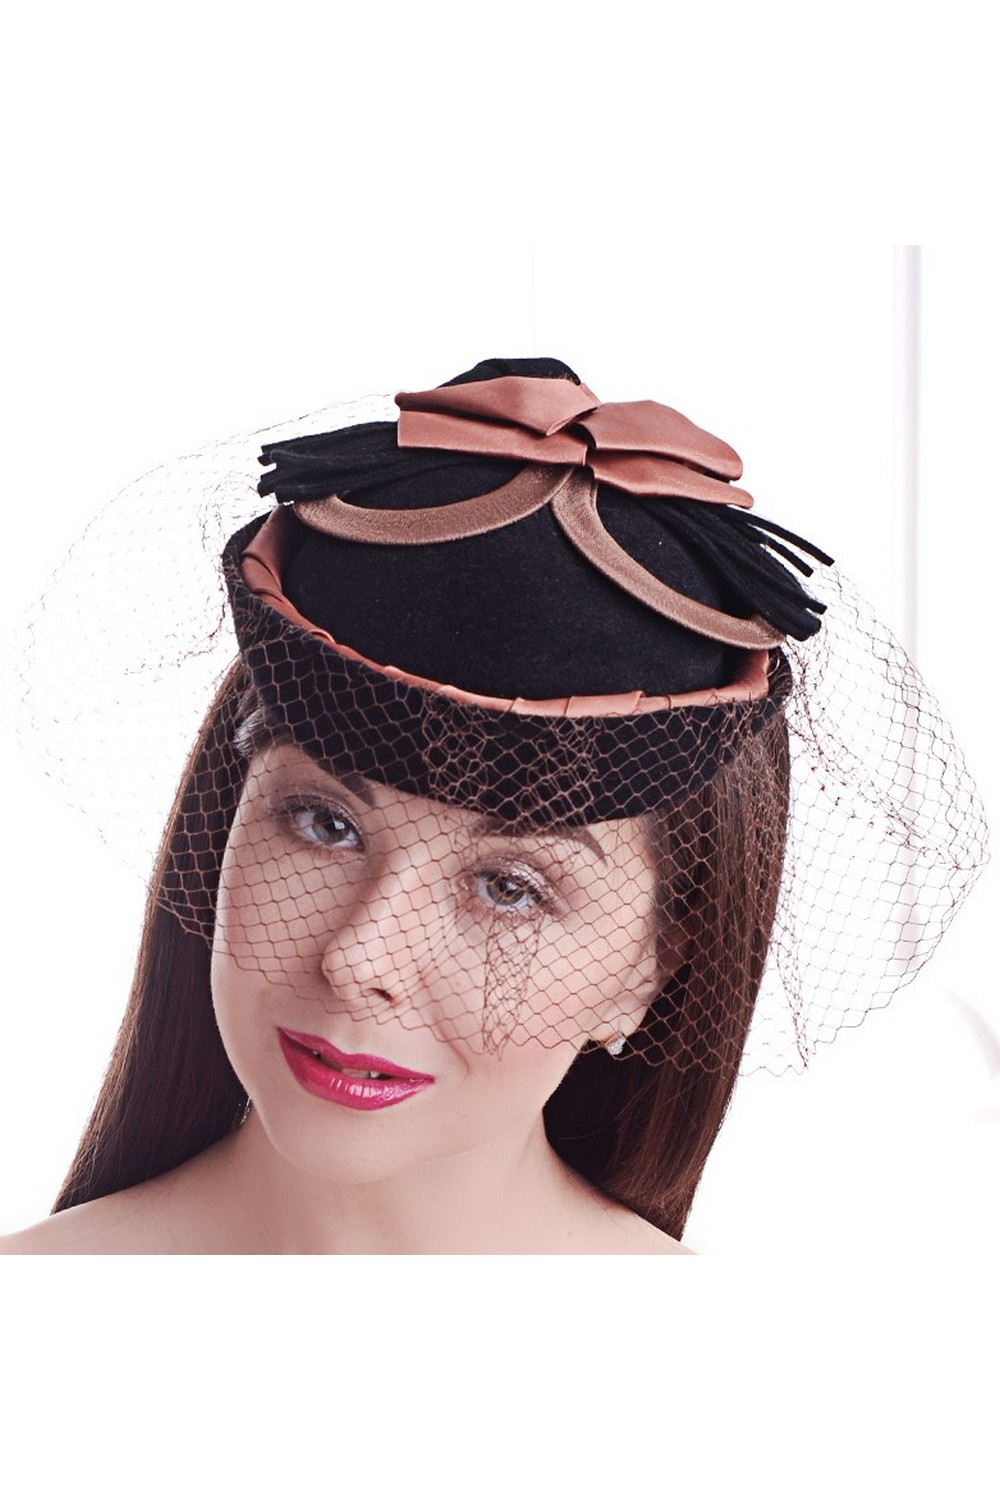 Buy Black exclusive felt women's pillbox hat with veil in retro style, Unique designer stylish hat